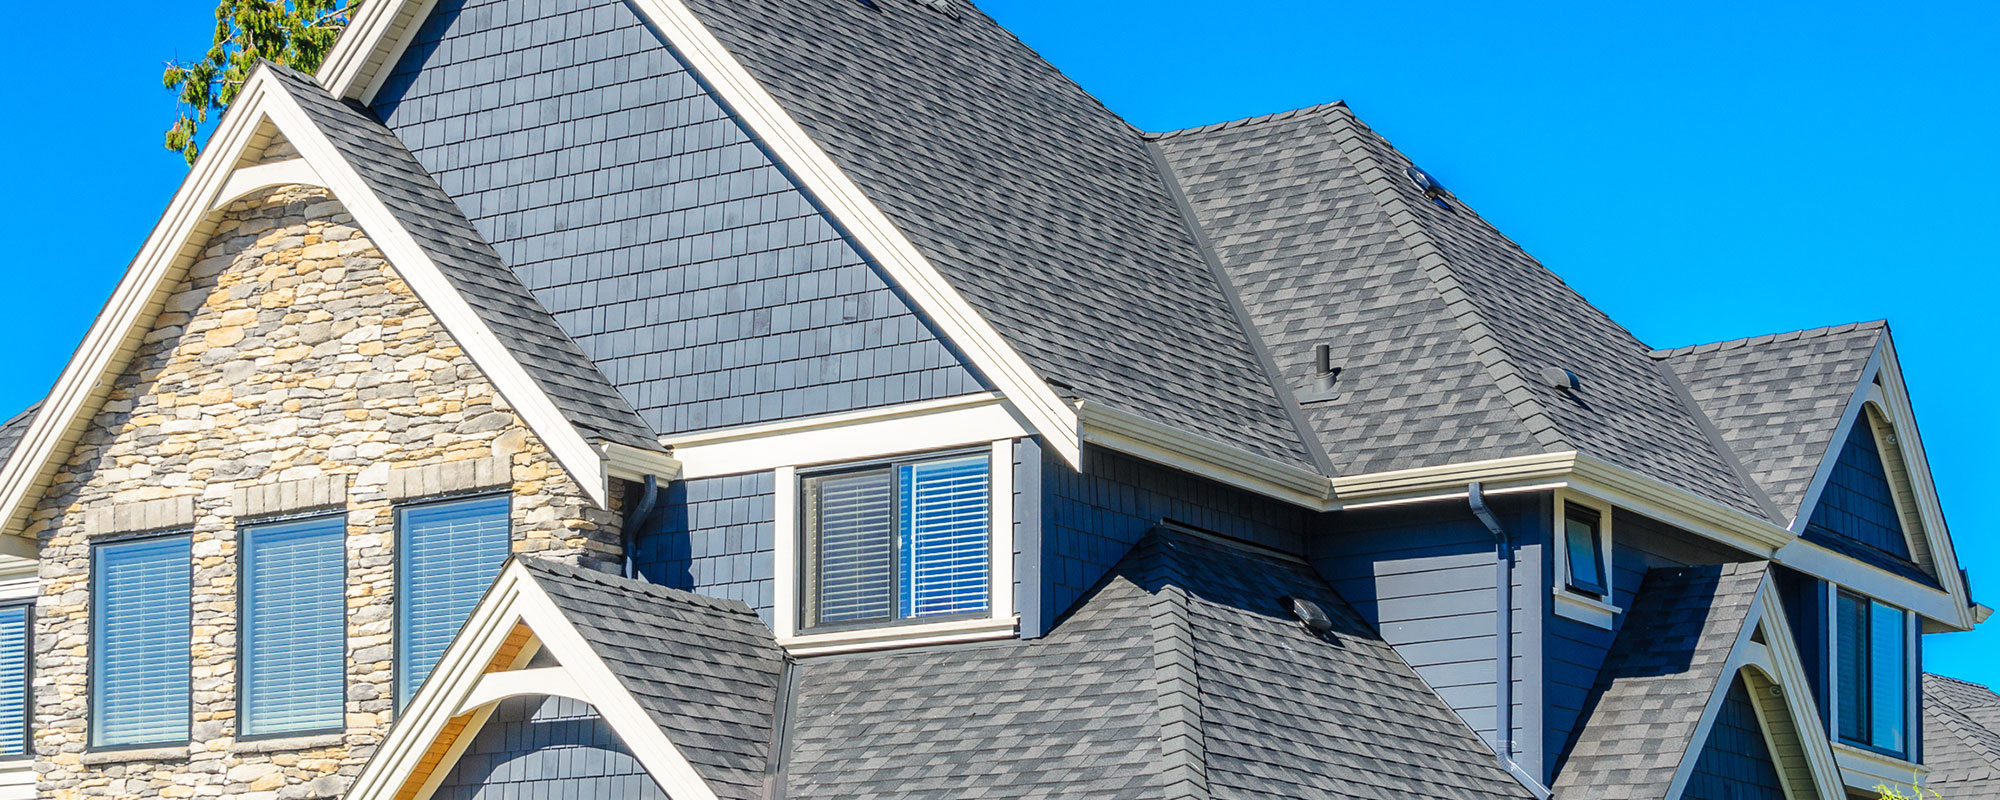 St Louis Roofing Company St Louis Mo